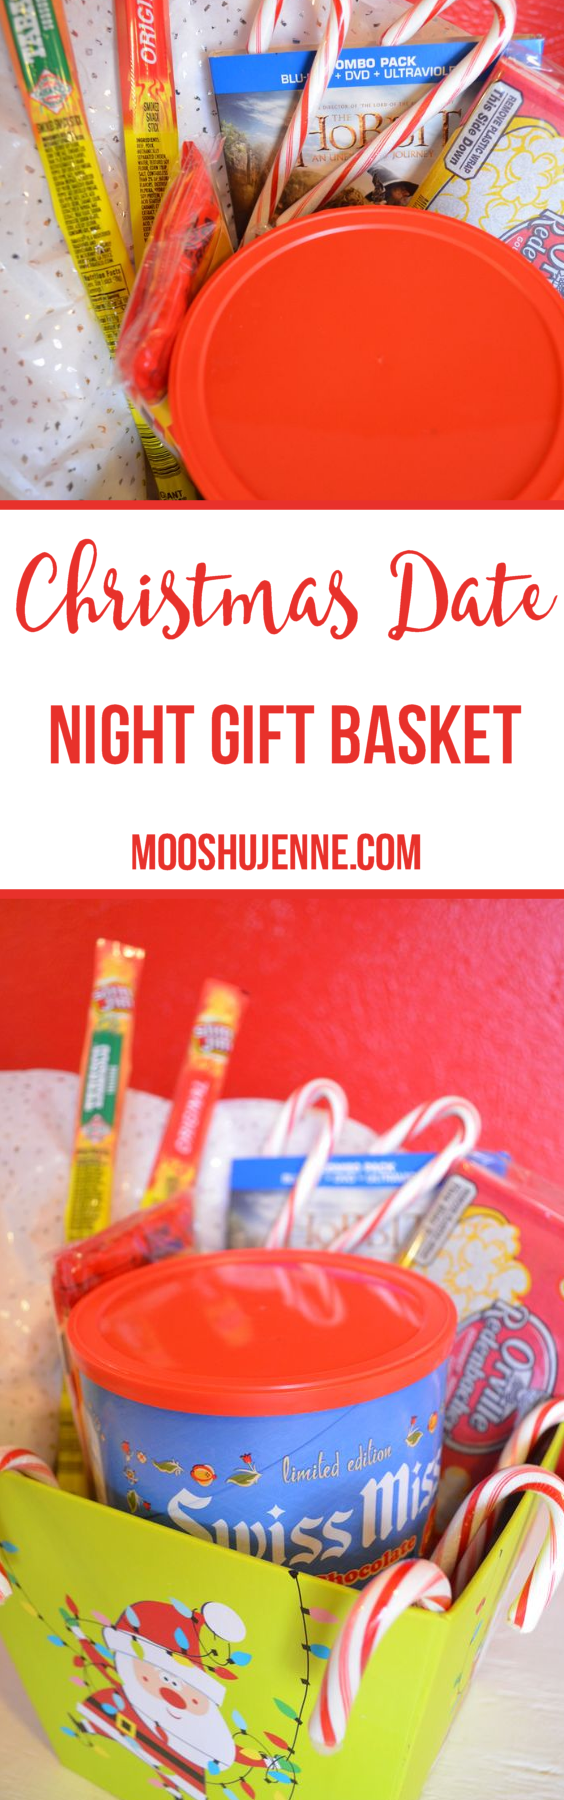 What I love about Christmas is buying gifts for friends or making a pretty basket fit for a movie guru. Often if I don't know much about a person I will do the Christmas date night hot chocolate basket.